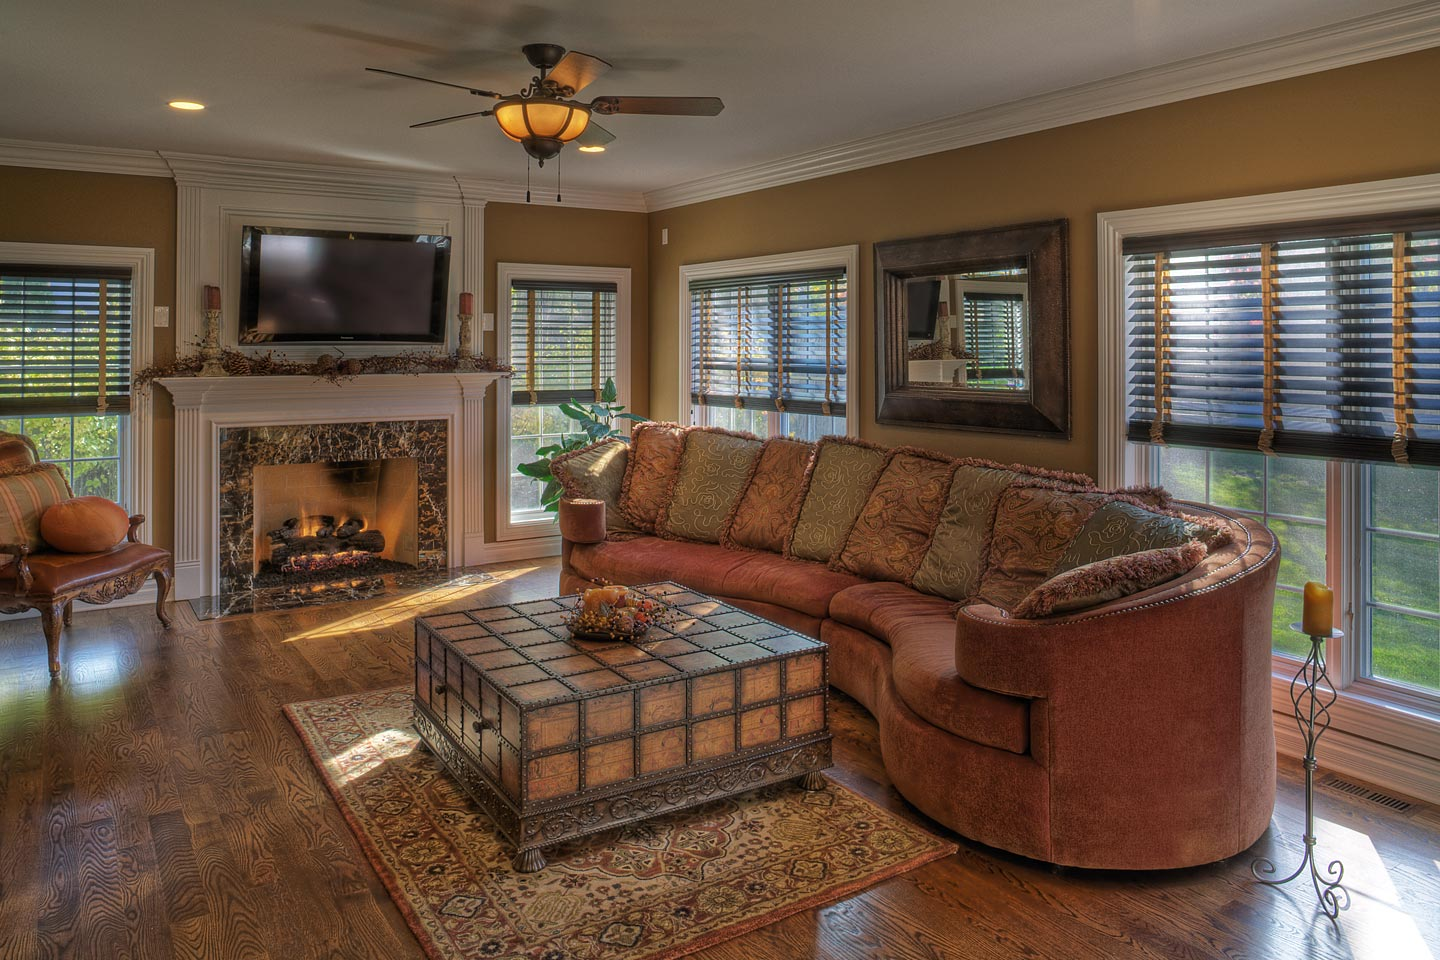 a warmly decorated family room featuring a fireplace flanked by comfortable seating, photographed by Jacob Rosenfeld